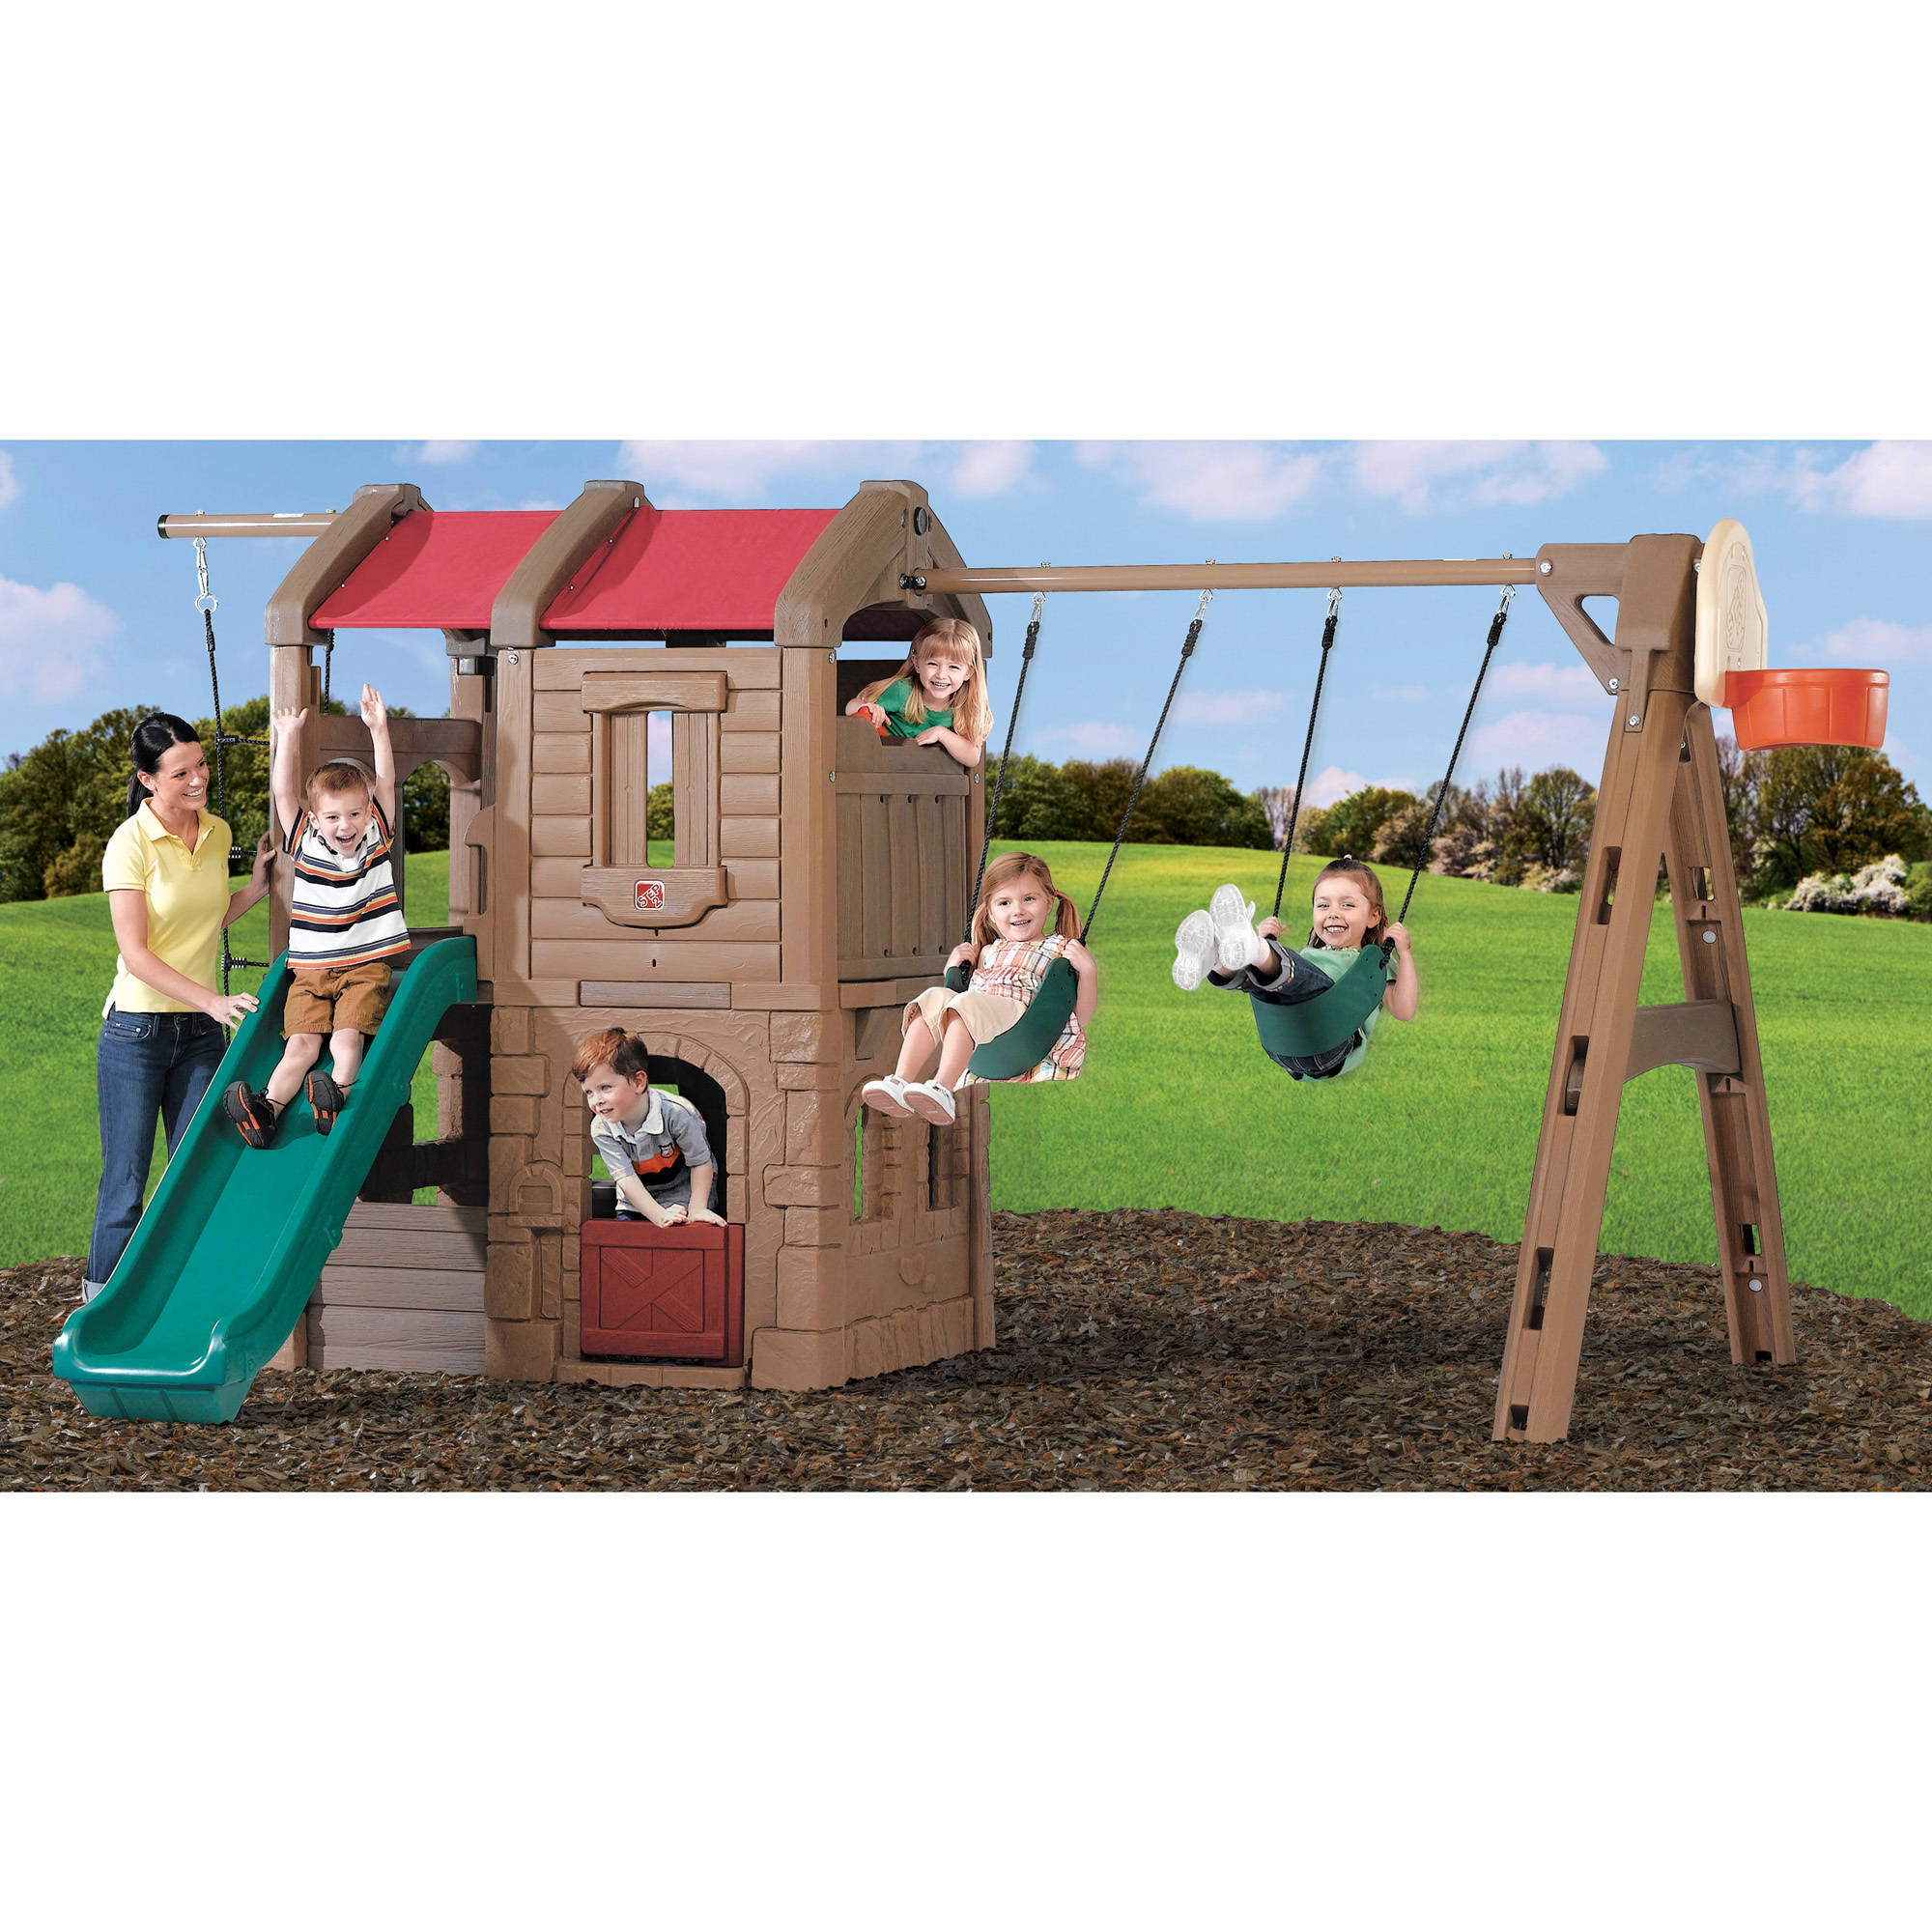 Step2 Naturally Playful Adventure Lodge Play Center Swing Set by Step2